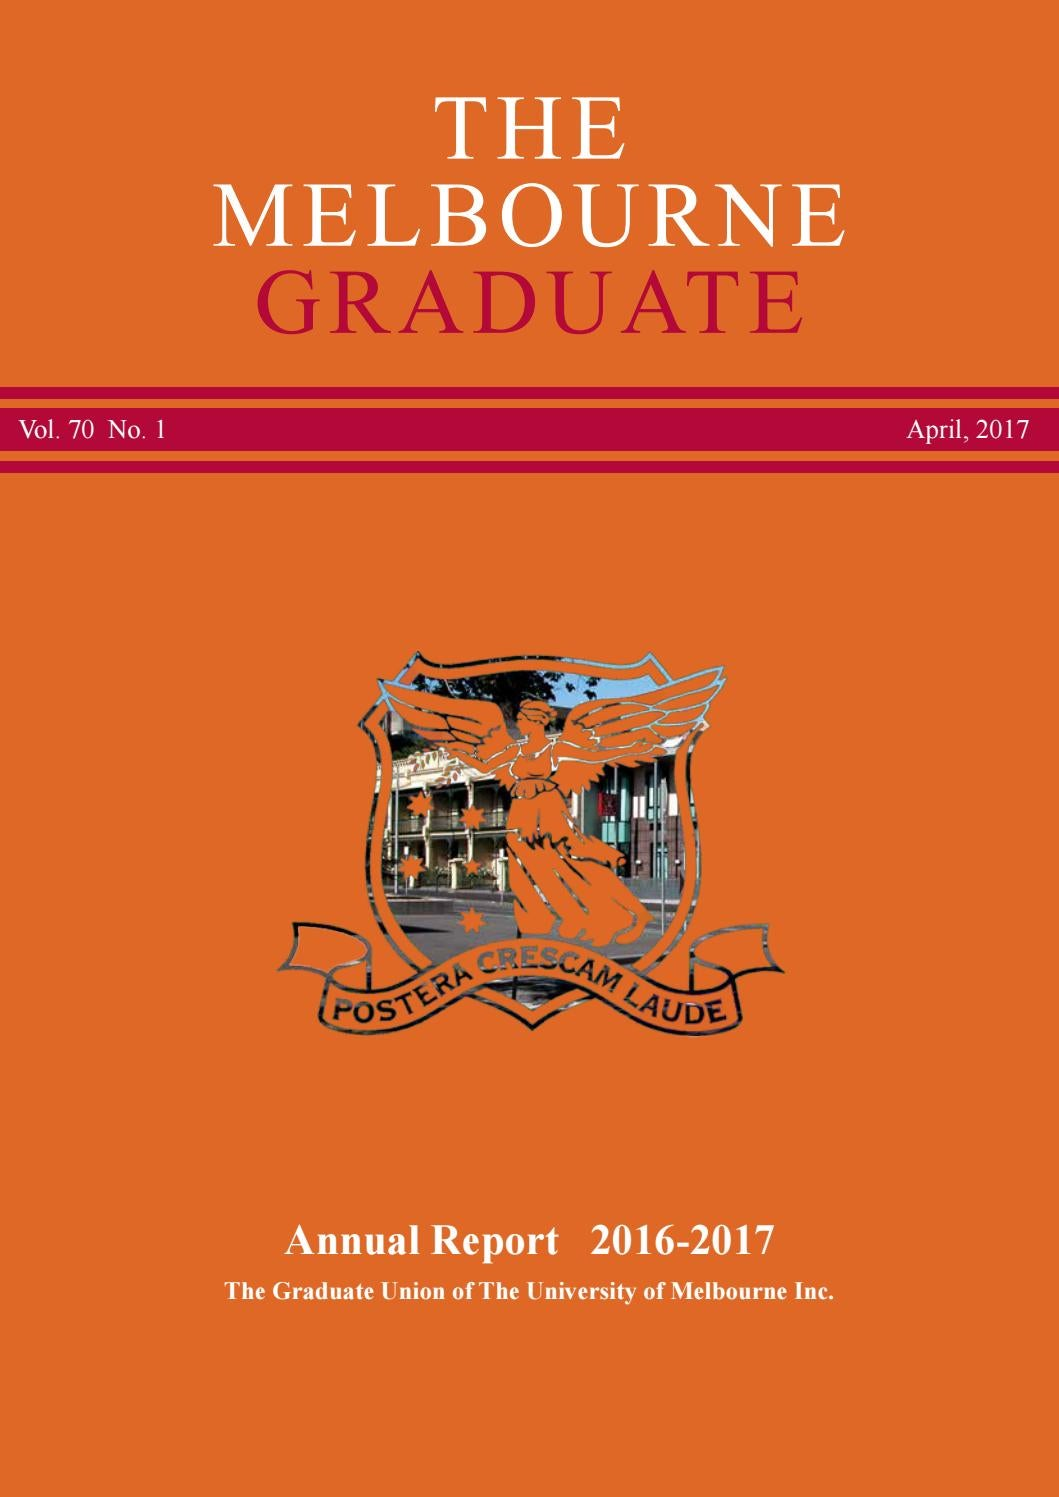 286971da528 The Melbourne Graduate April 2017 (2016 Annual Report) by Graduate ...